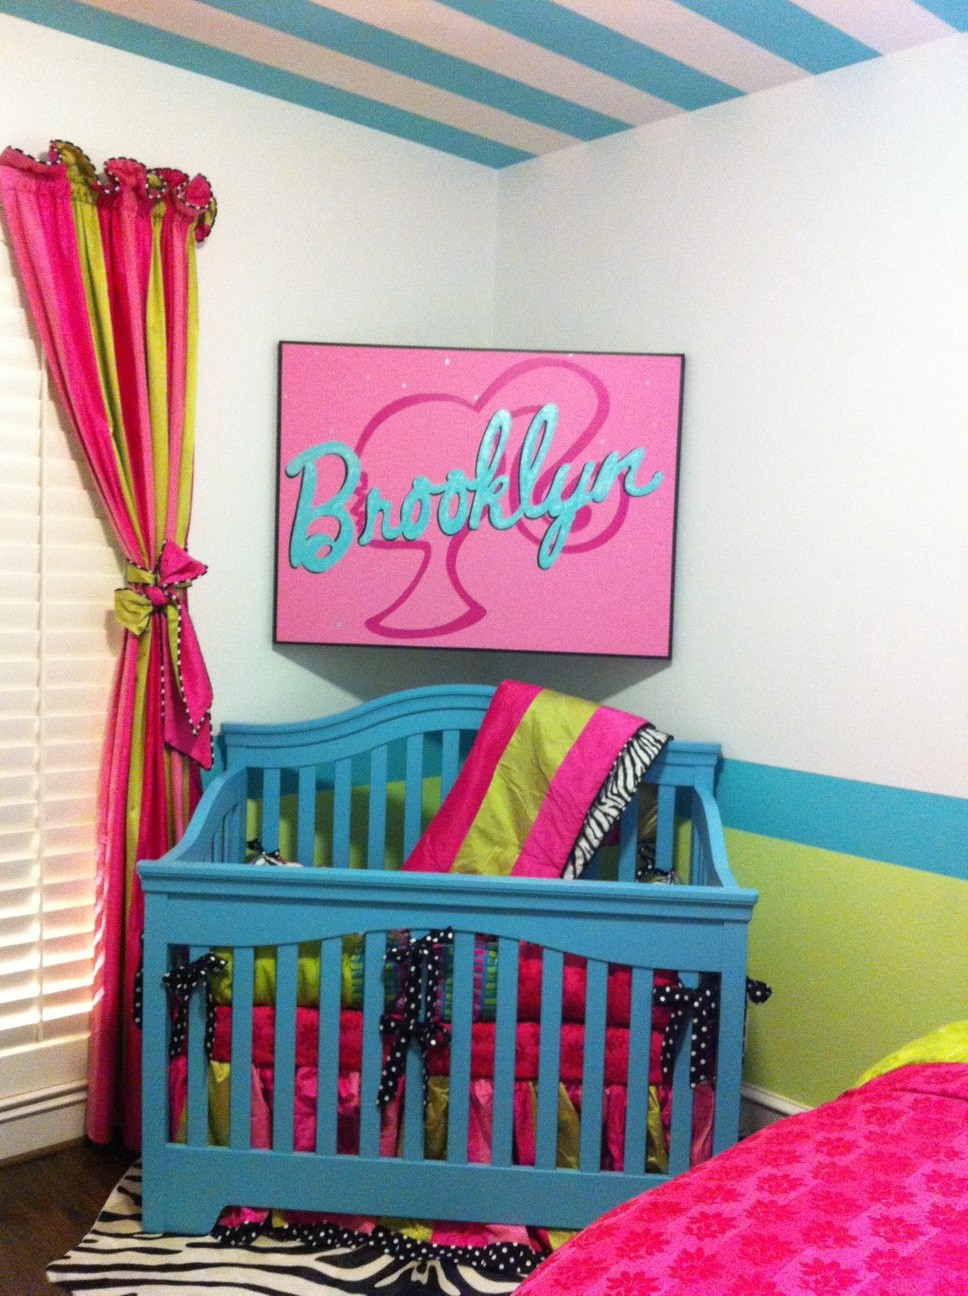 Today S Sneak K Saay Is A Glimpse Into The Nursery Of Our Sweet Baby Brooklyn Who Due To Arrive Any Day Now All Bedding What I